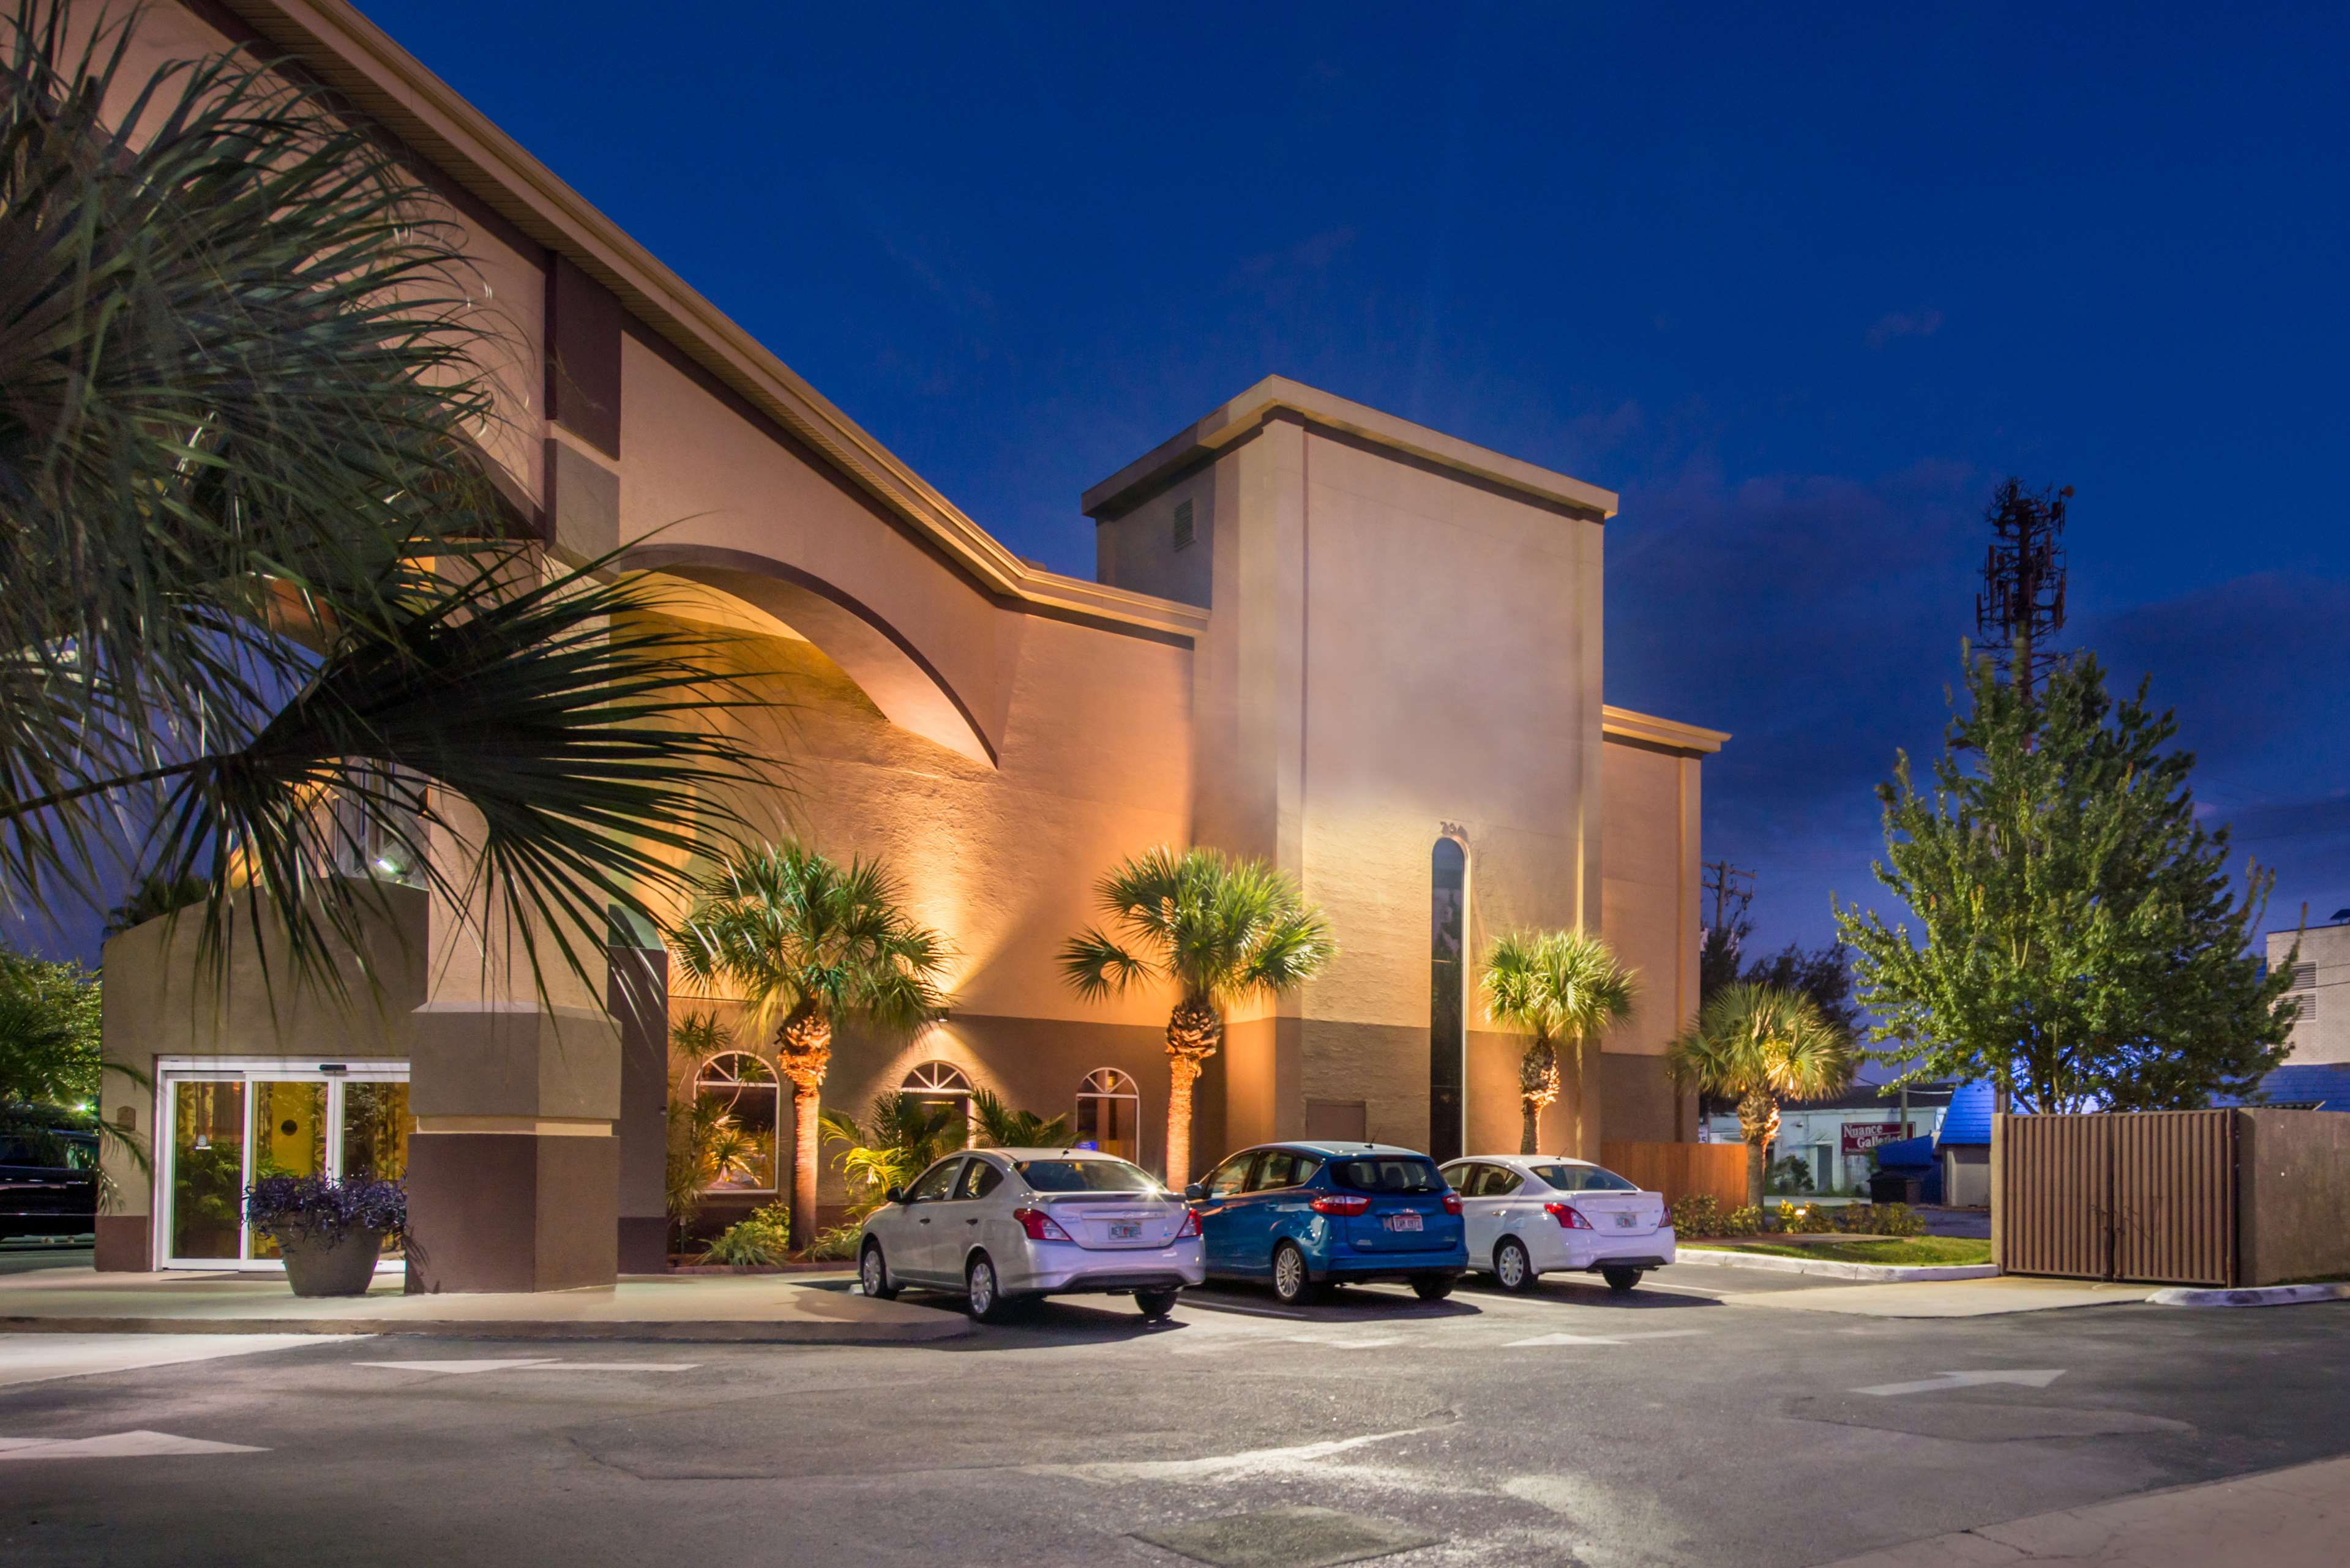 Best Western Tampa image 4